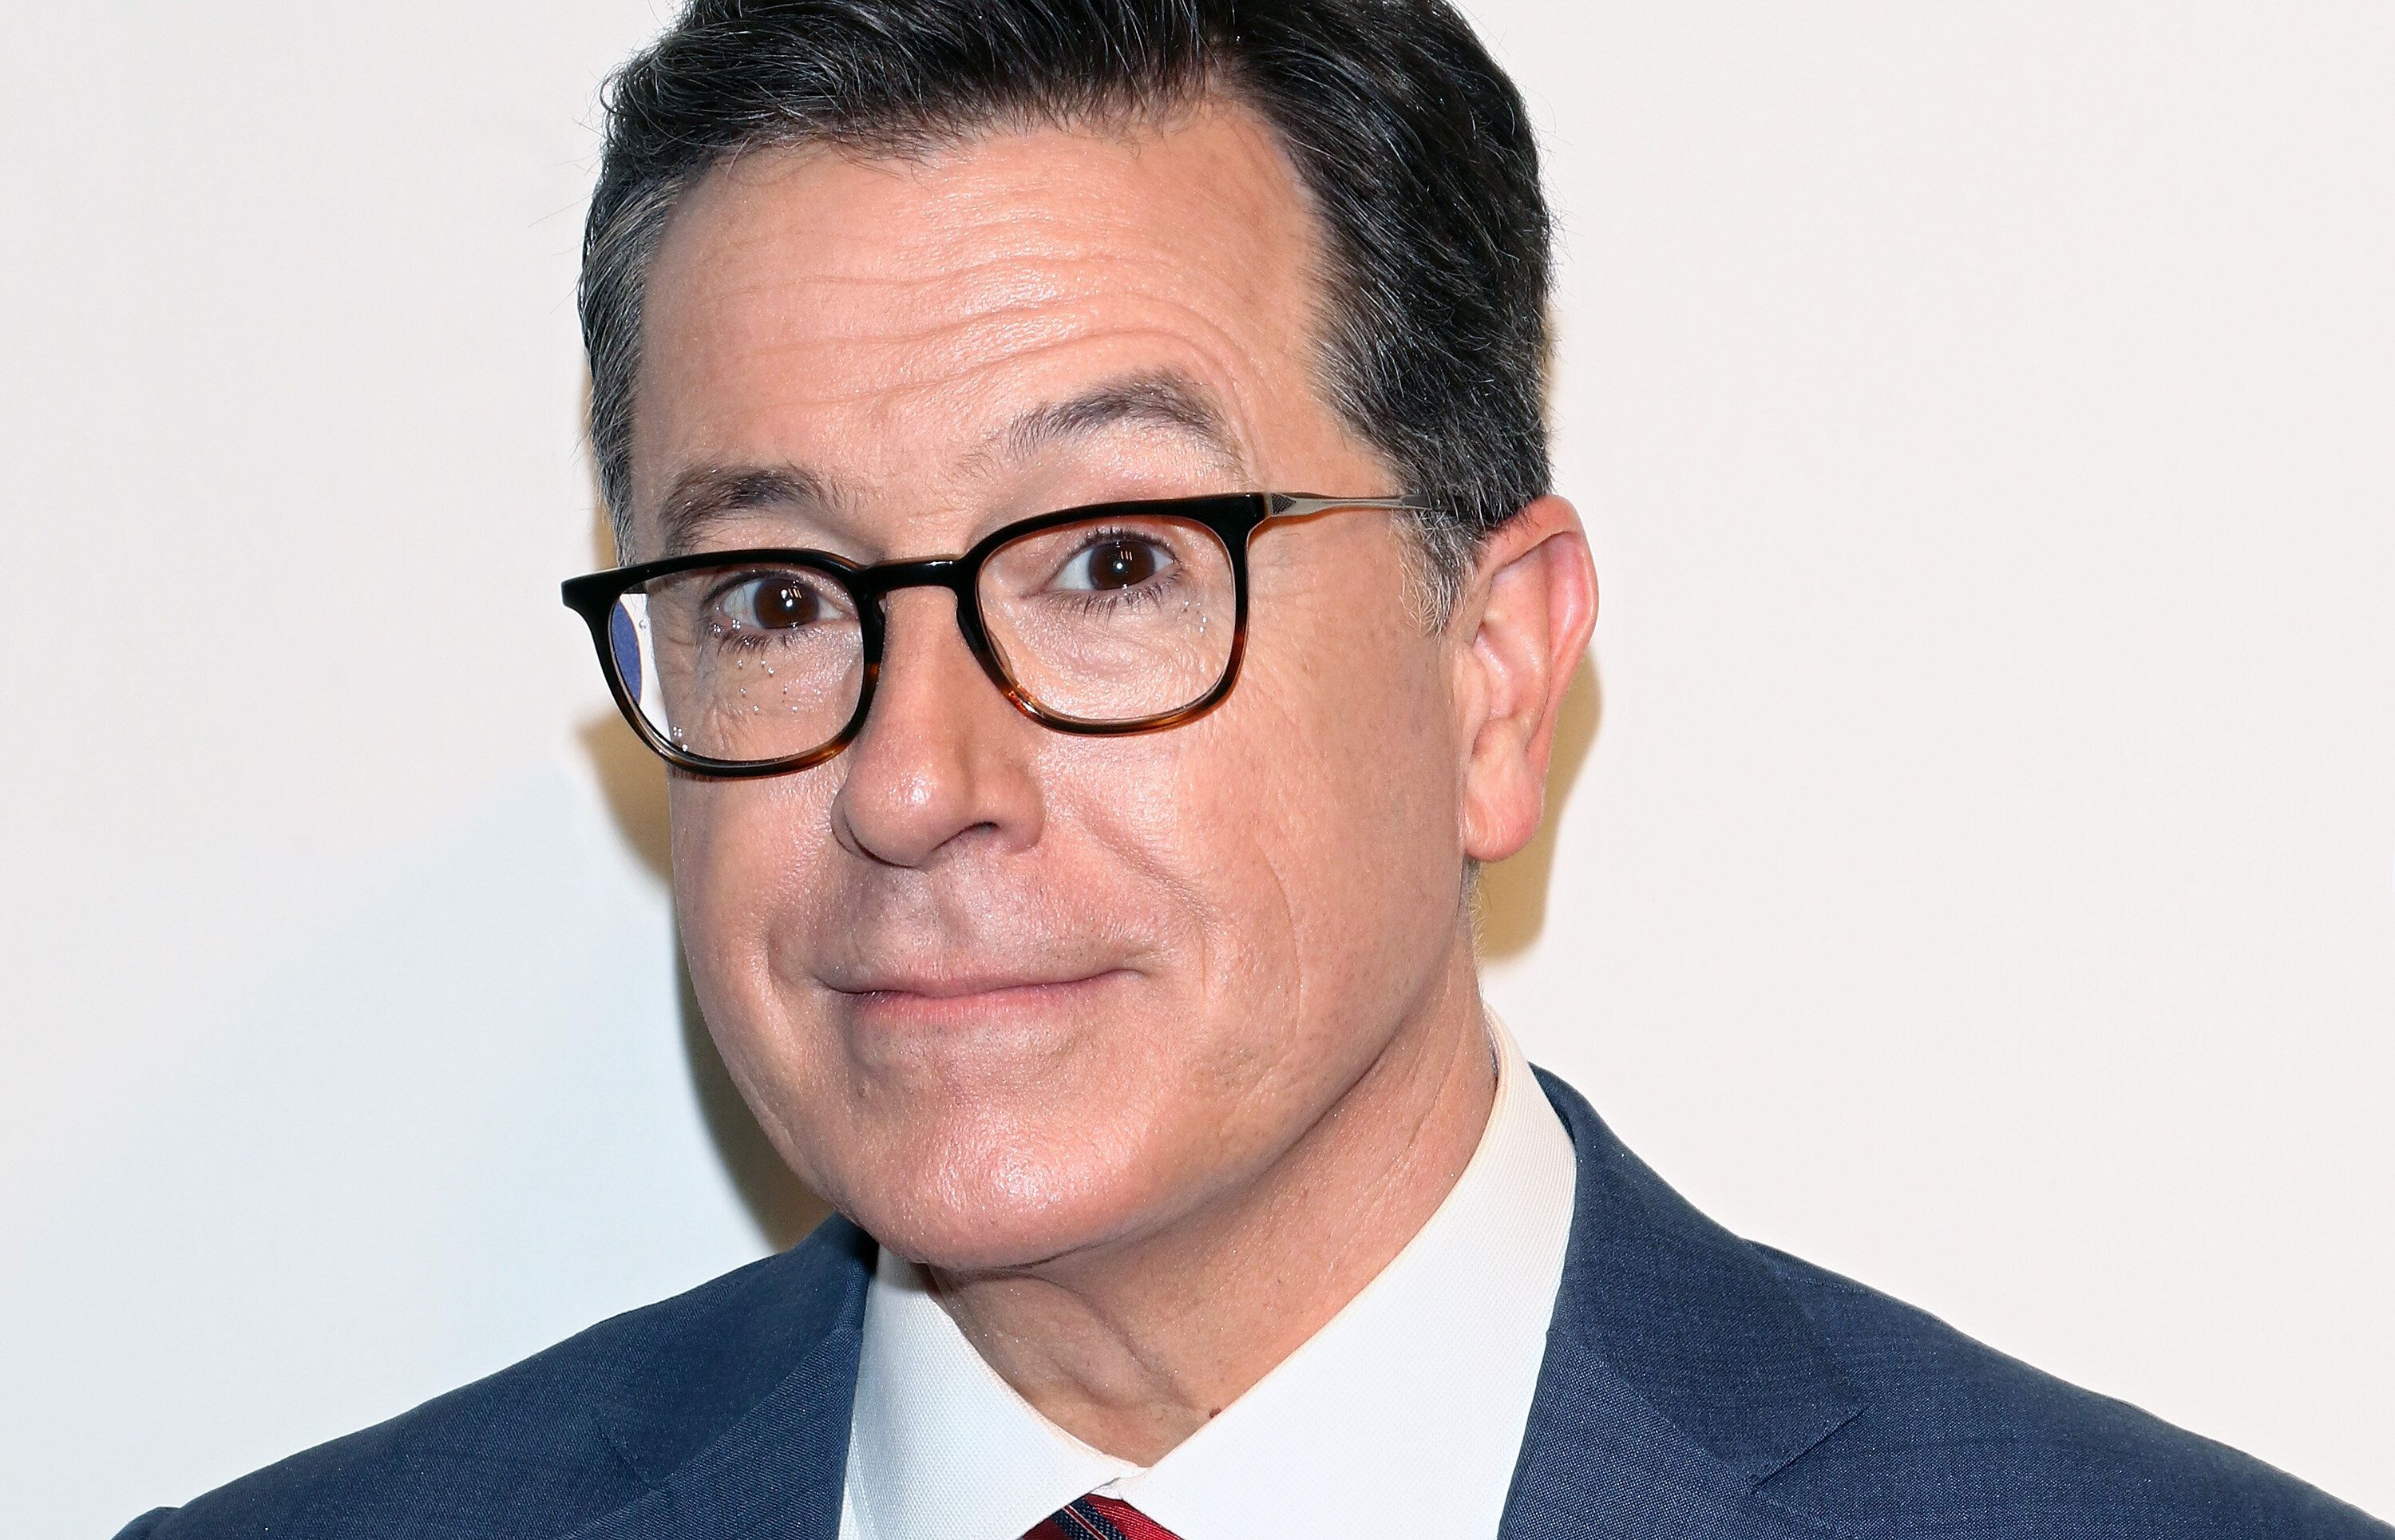 NEW YORK, NY - MAY 16:  TV host Stephen Colbert attend the 2018 CBS Upfront at The Plaza Hotel on May 16, 2018 in New York City.  (Photo by Jim Spellman/WireImage)